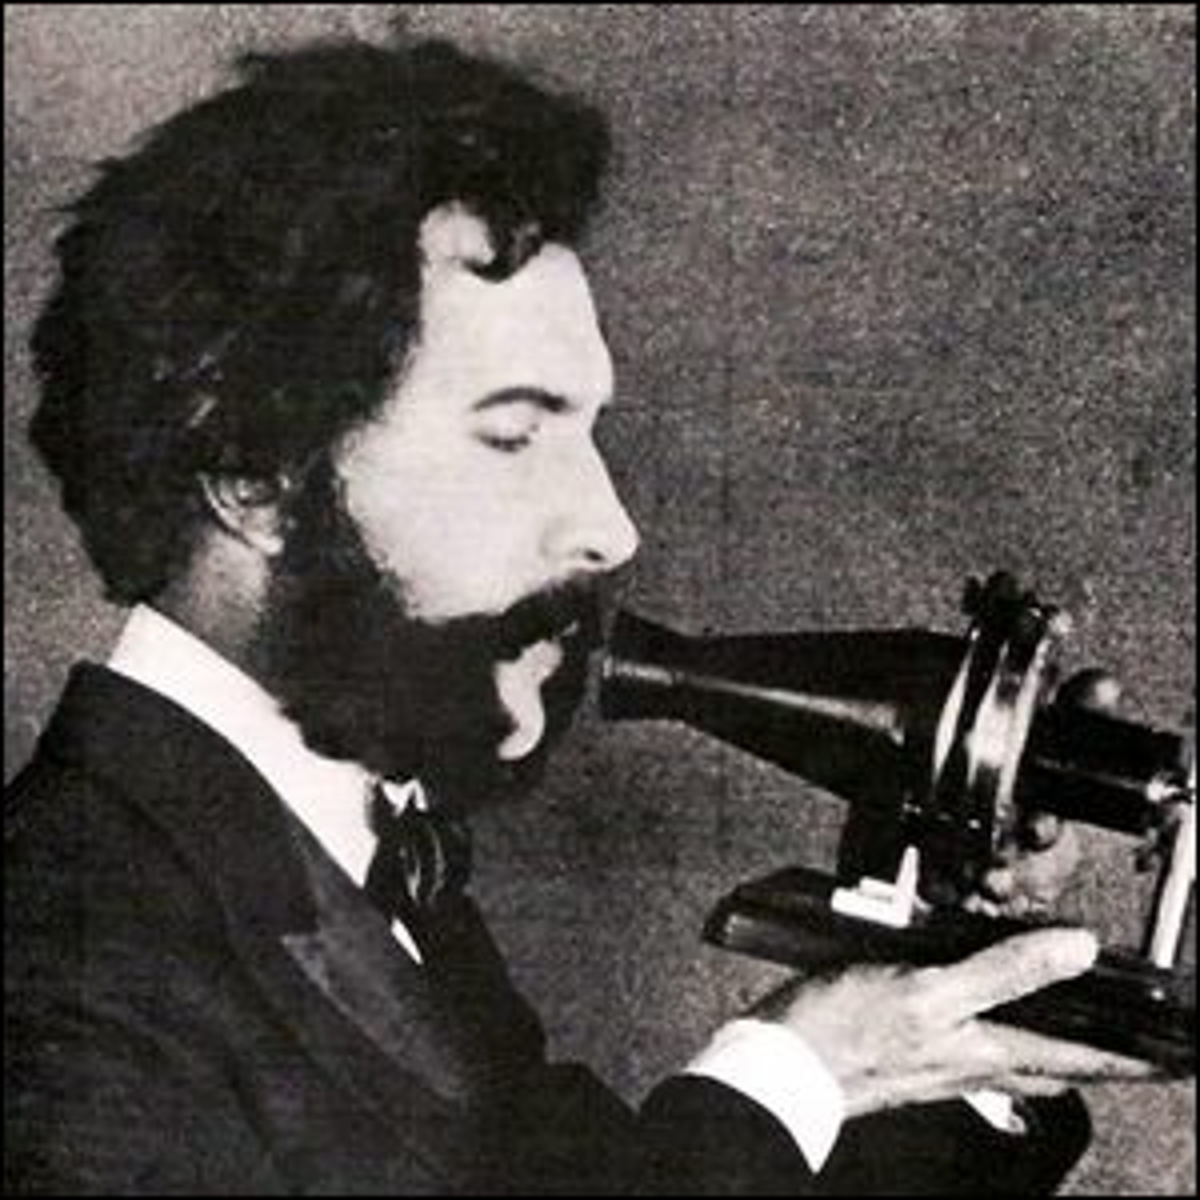 An actor portraying Alexander Graham Bell speaking into a telephone for a 1926 AT&T promotional film.